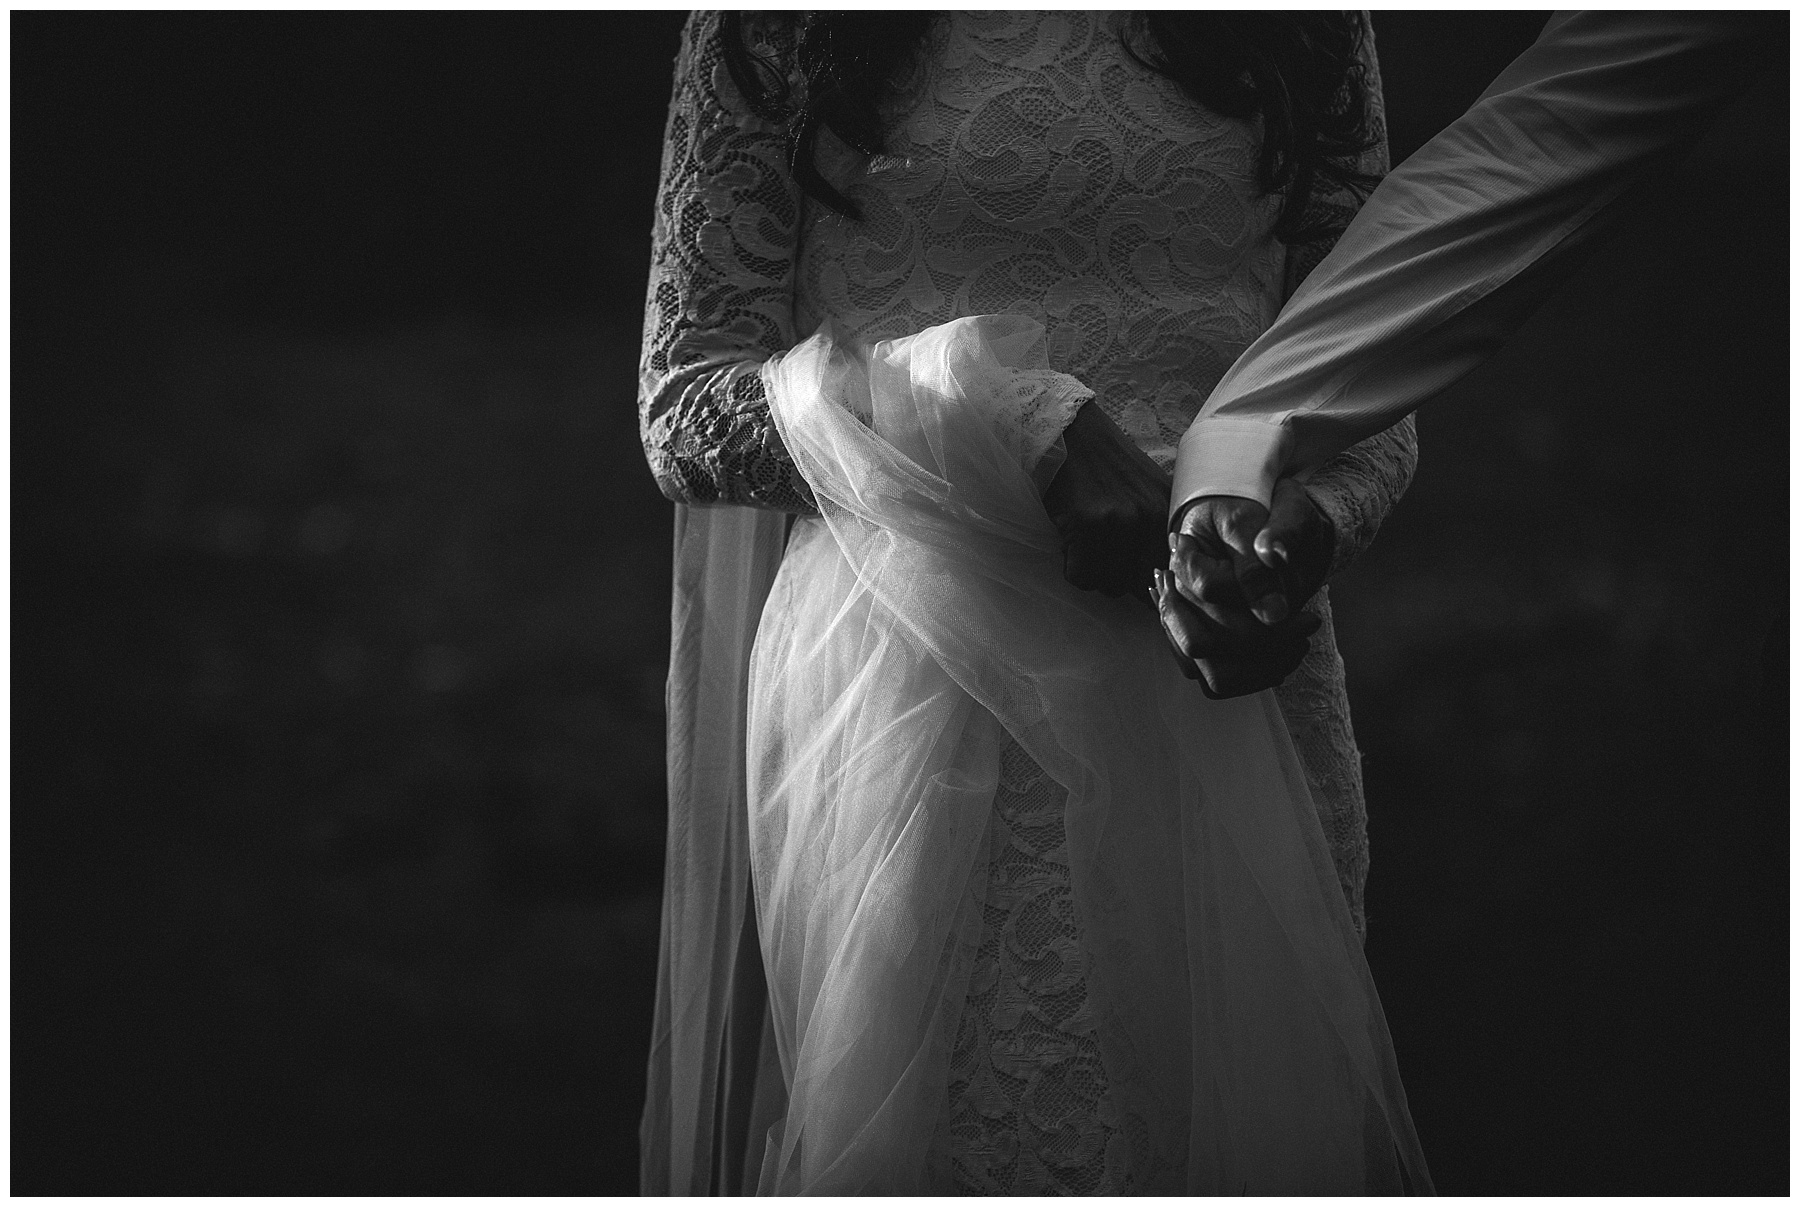 Moody black and white wedding photography by de lumière photography